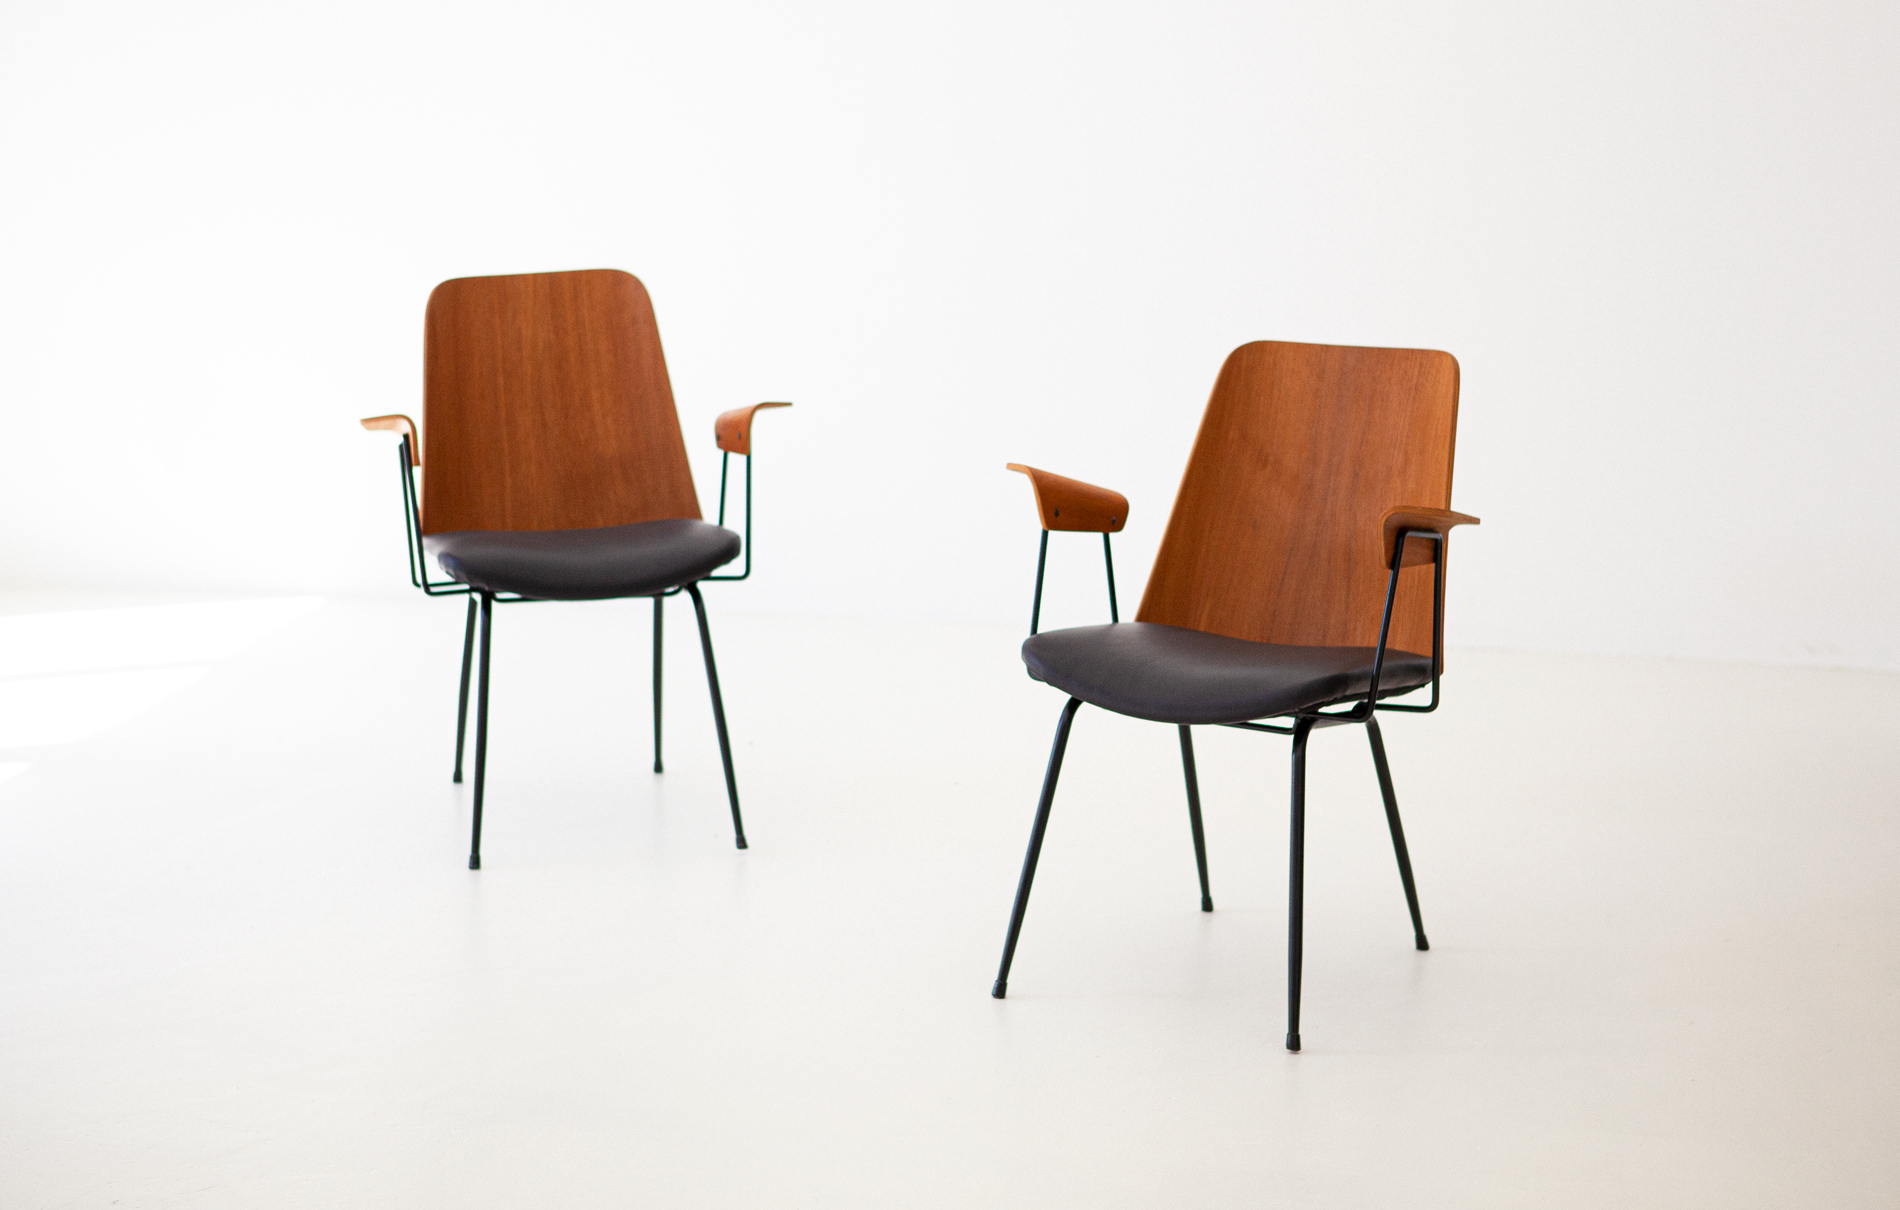 Italian-modern-desk-chairs-by-carlo-ratti-1-se287